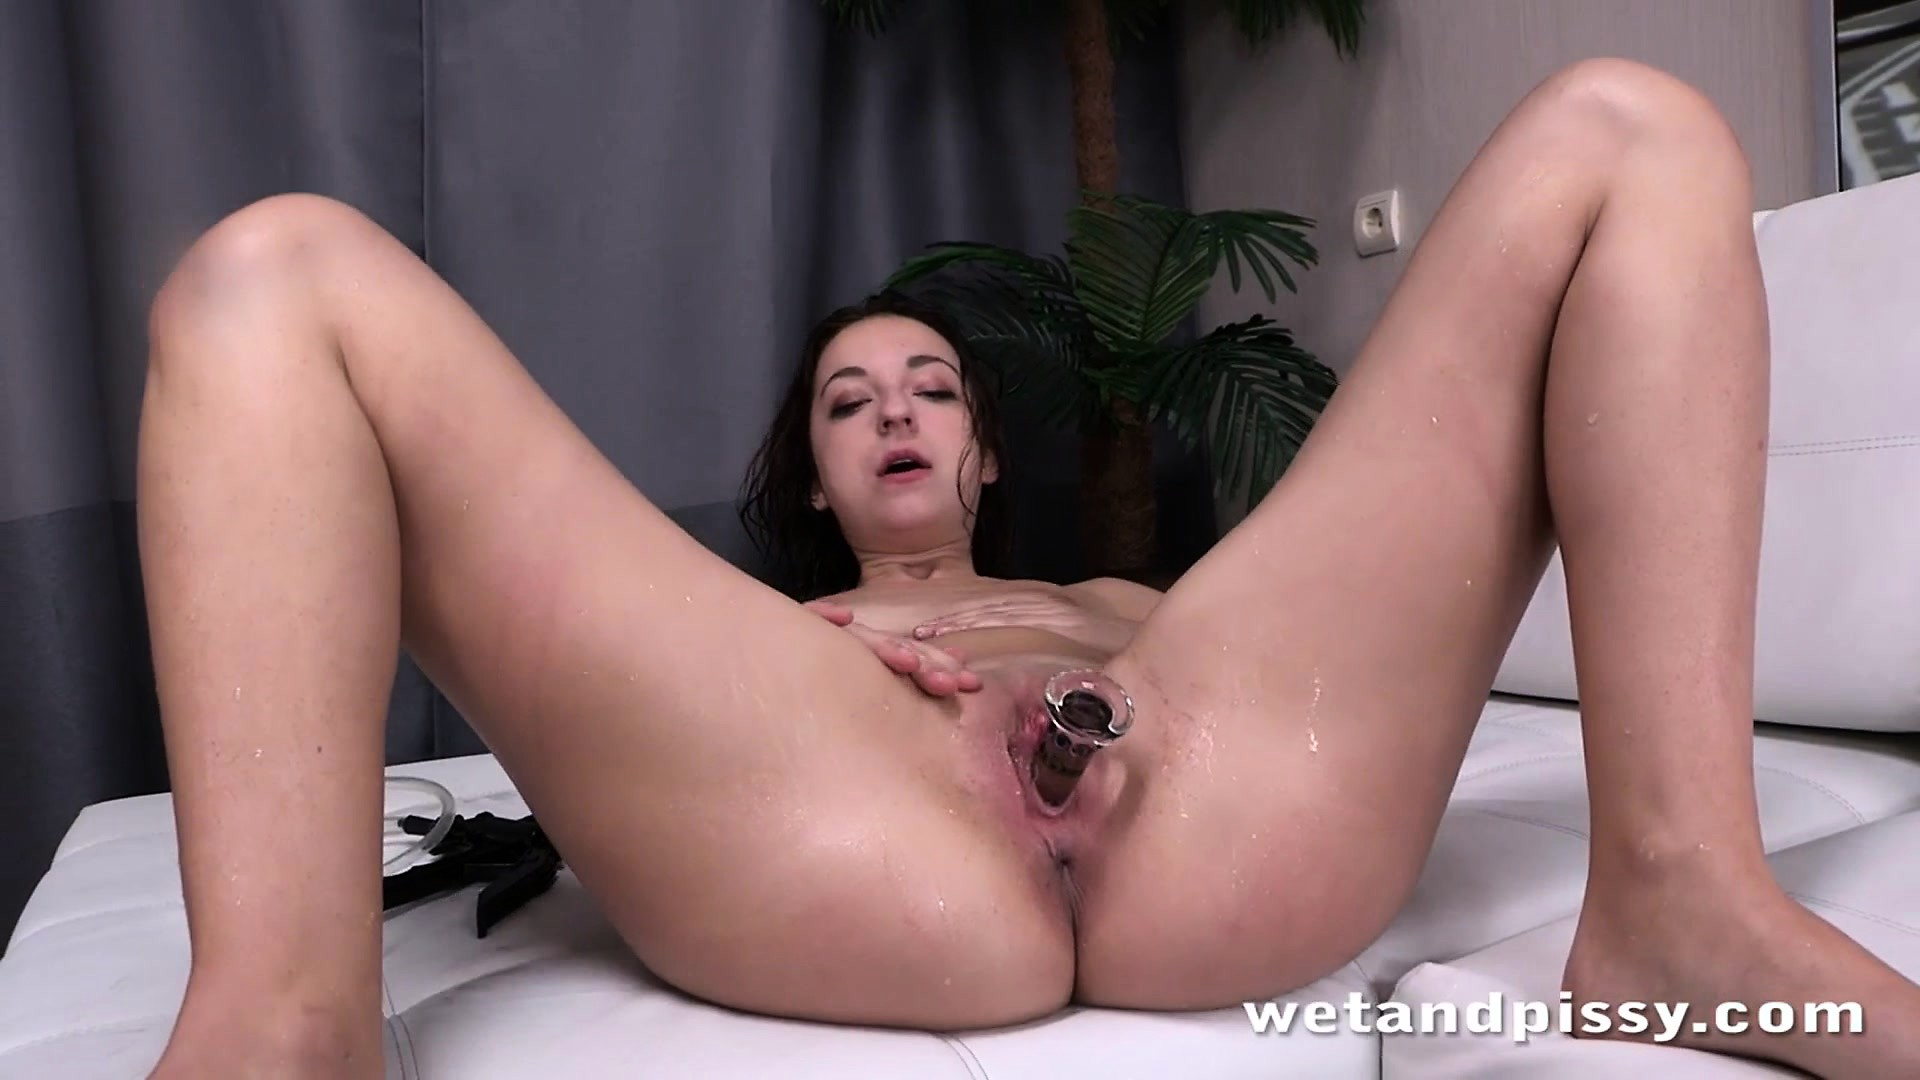 pissing-video-hd